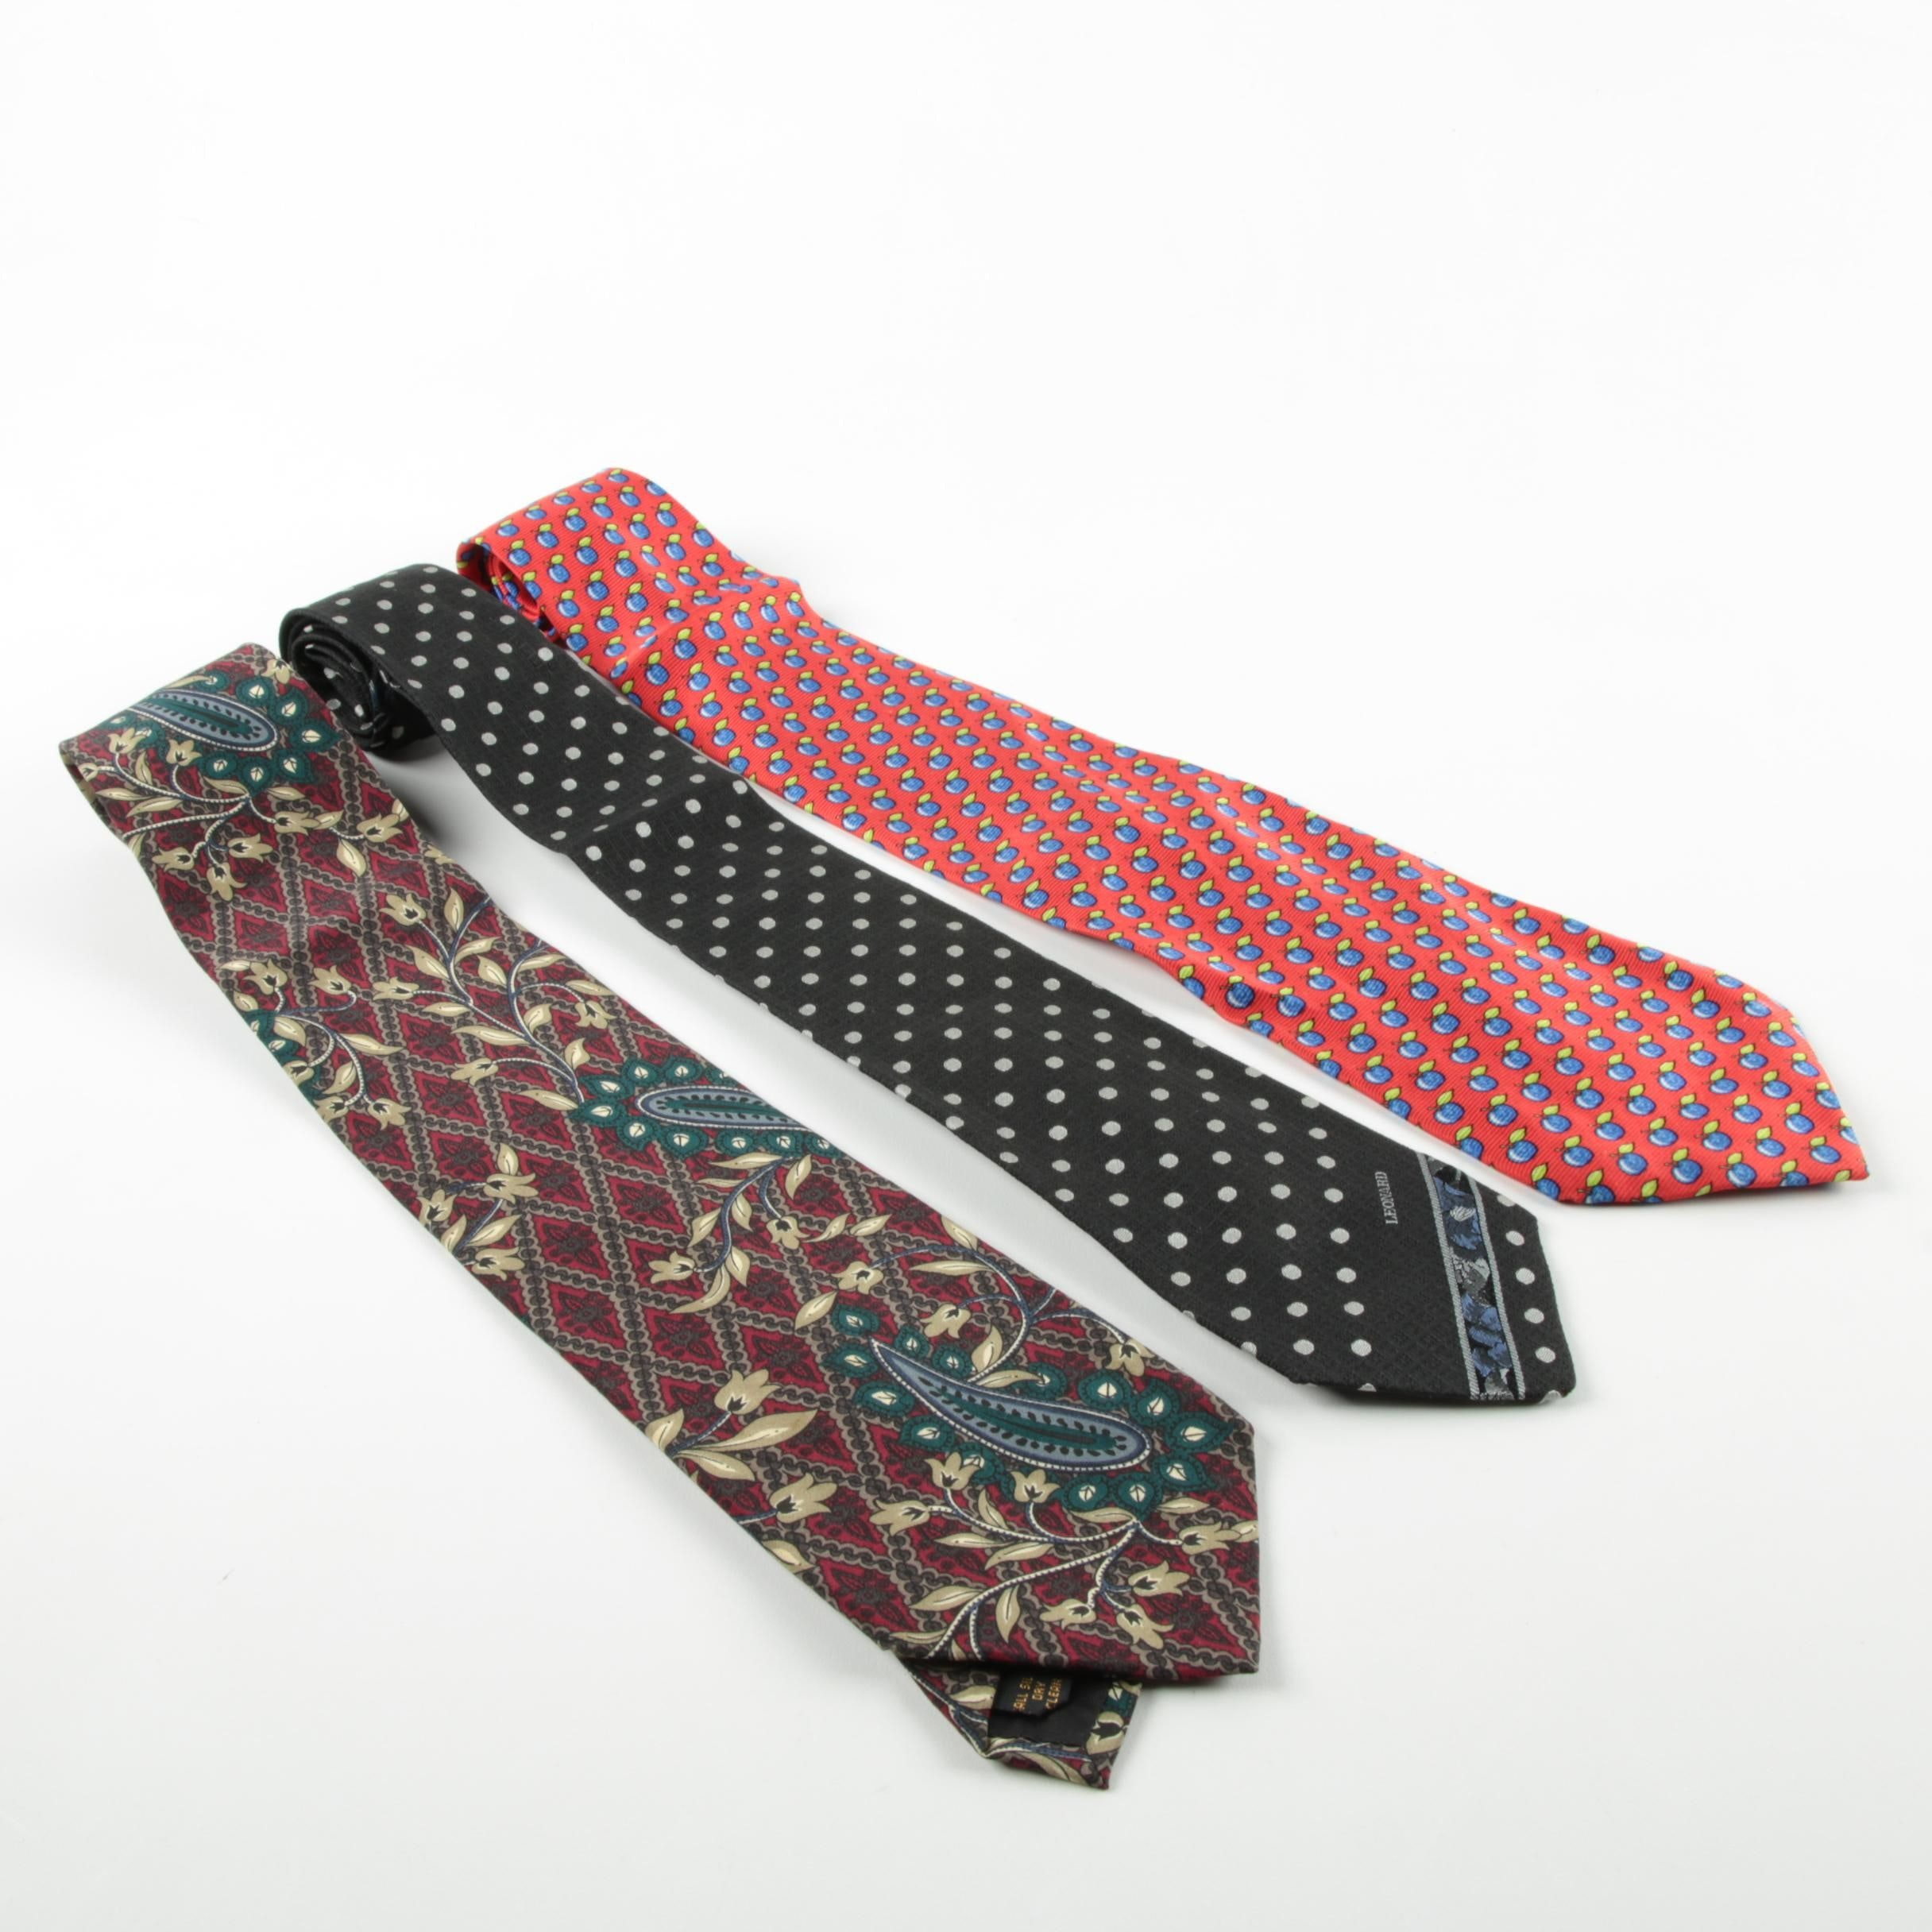 Karl Lagerfeld, Paco Rabanne and Leonard Silk Ties